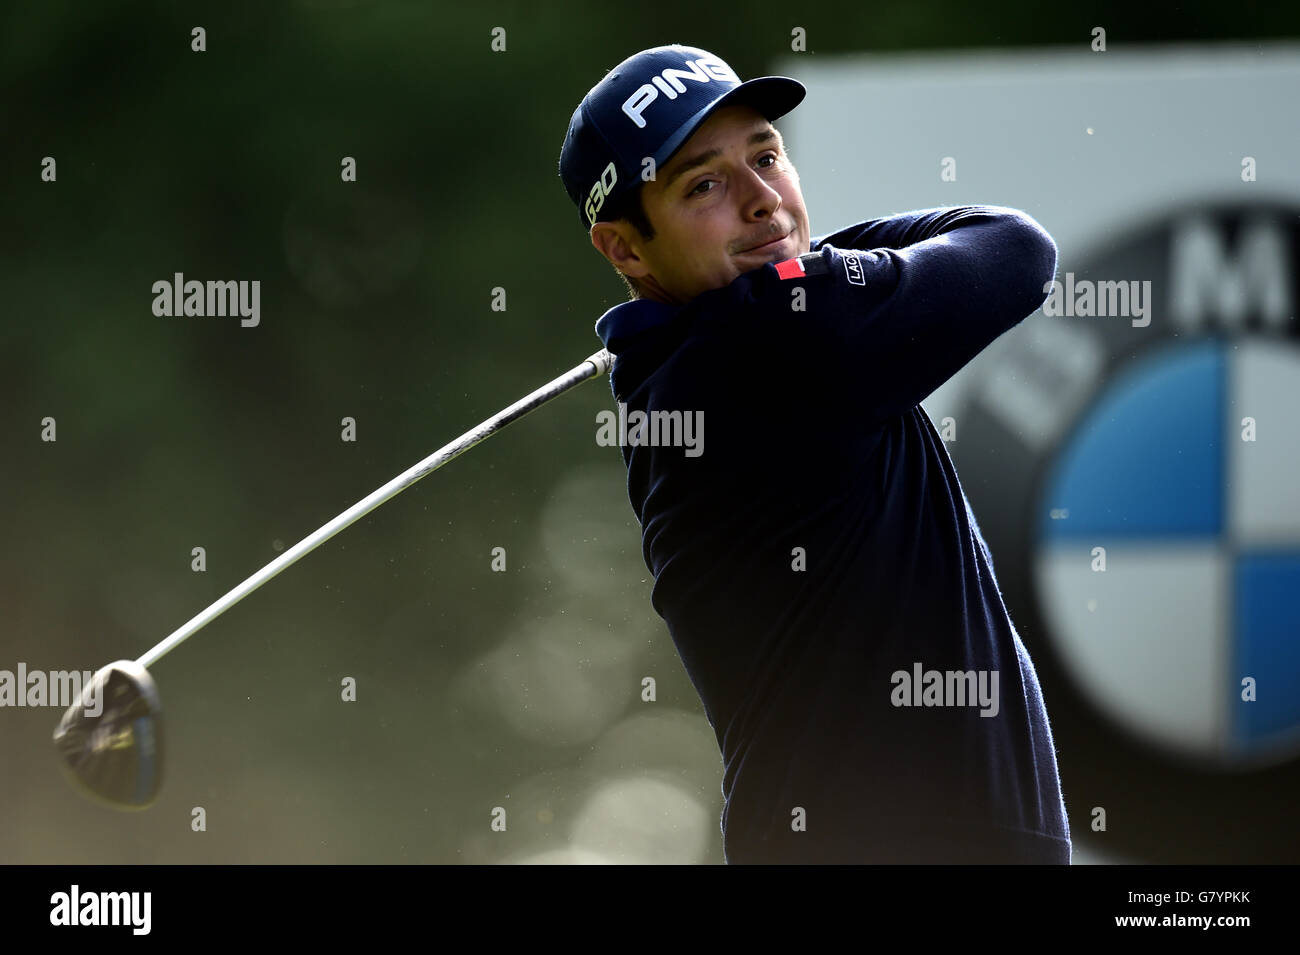 Golf - 2015 BMW PGA Championship - Day Two - Wentworth Golf Club - Stock Image